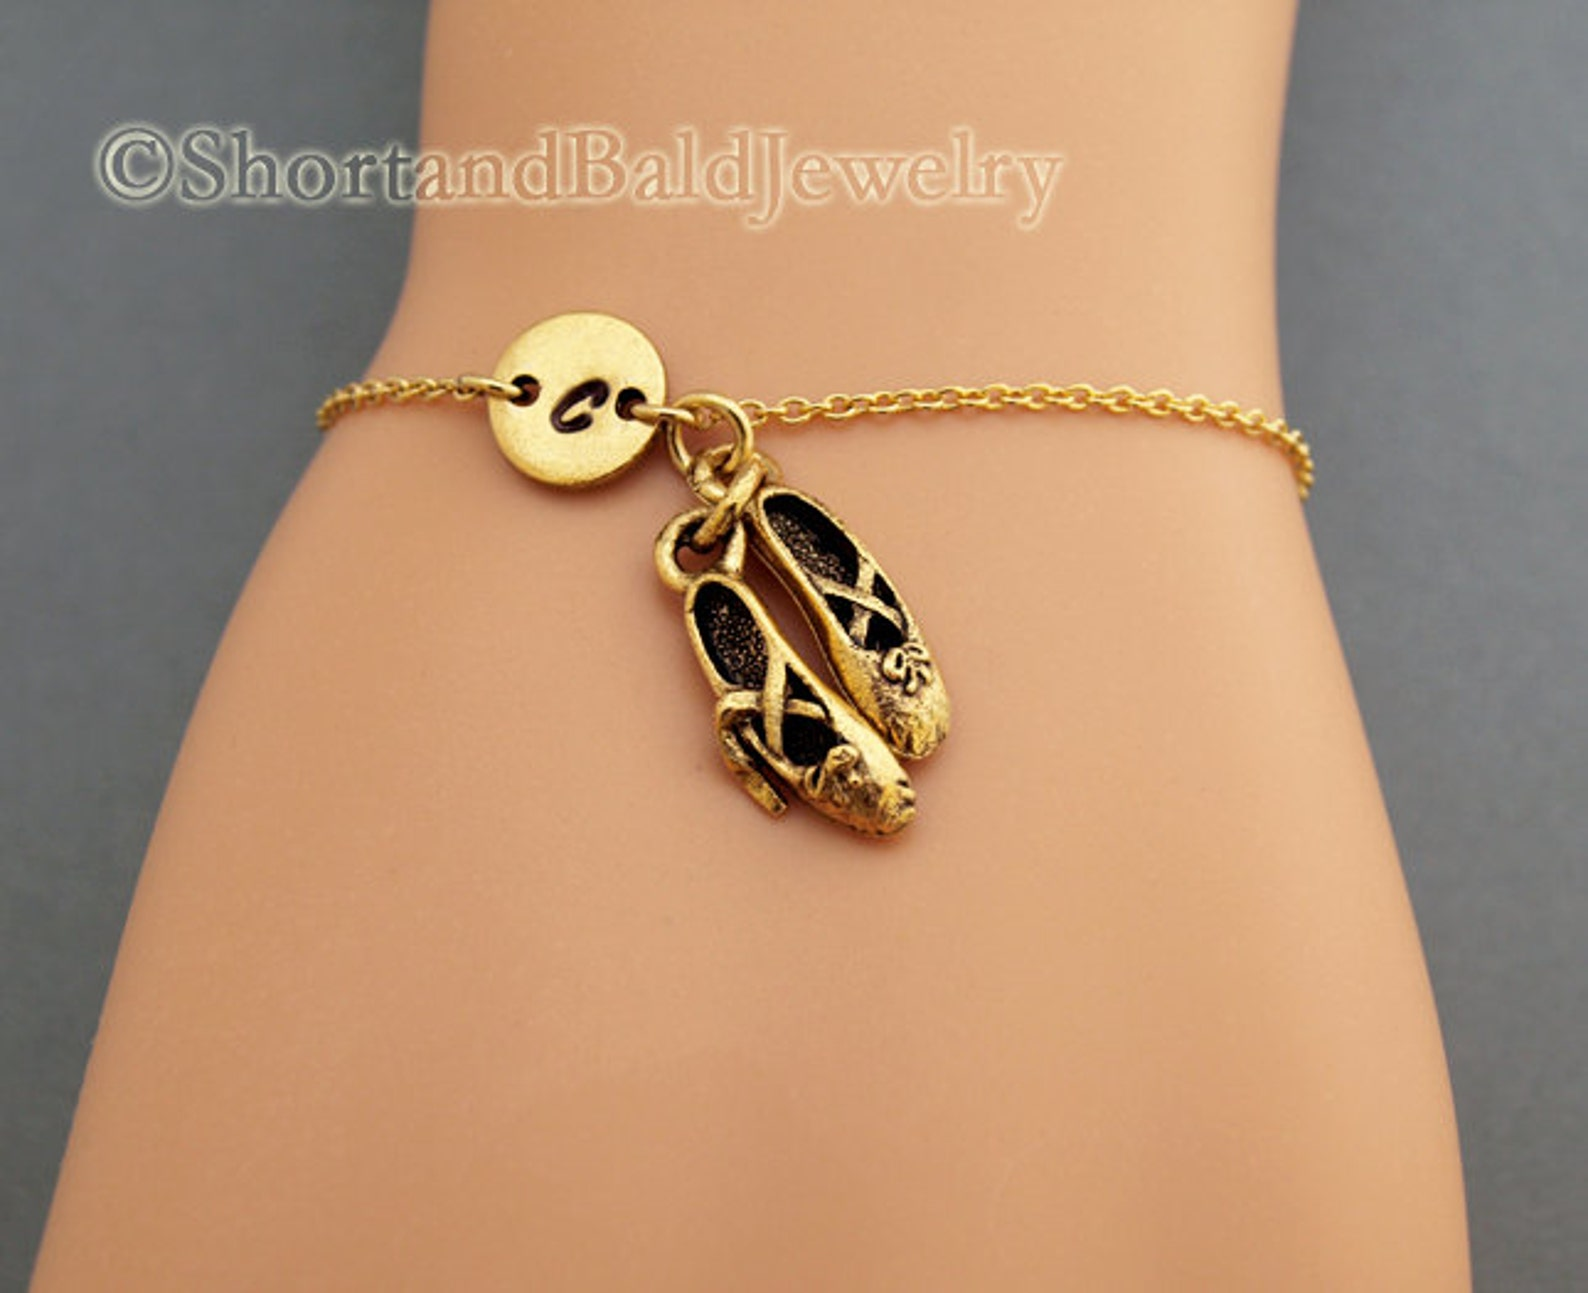 ballet shoes charm bracelet, ballet slippers, antique gold, initial bracelet, friendship, mothers, adjustable, monogram